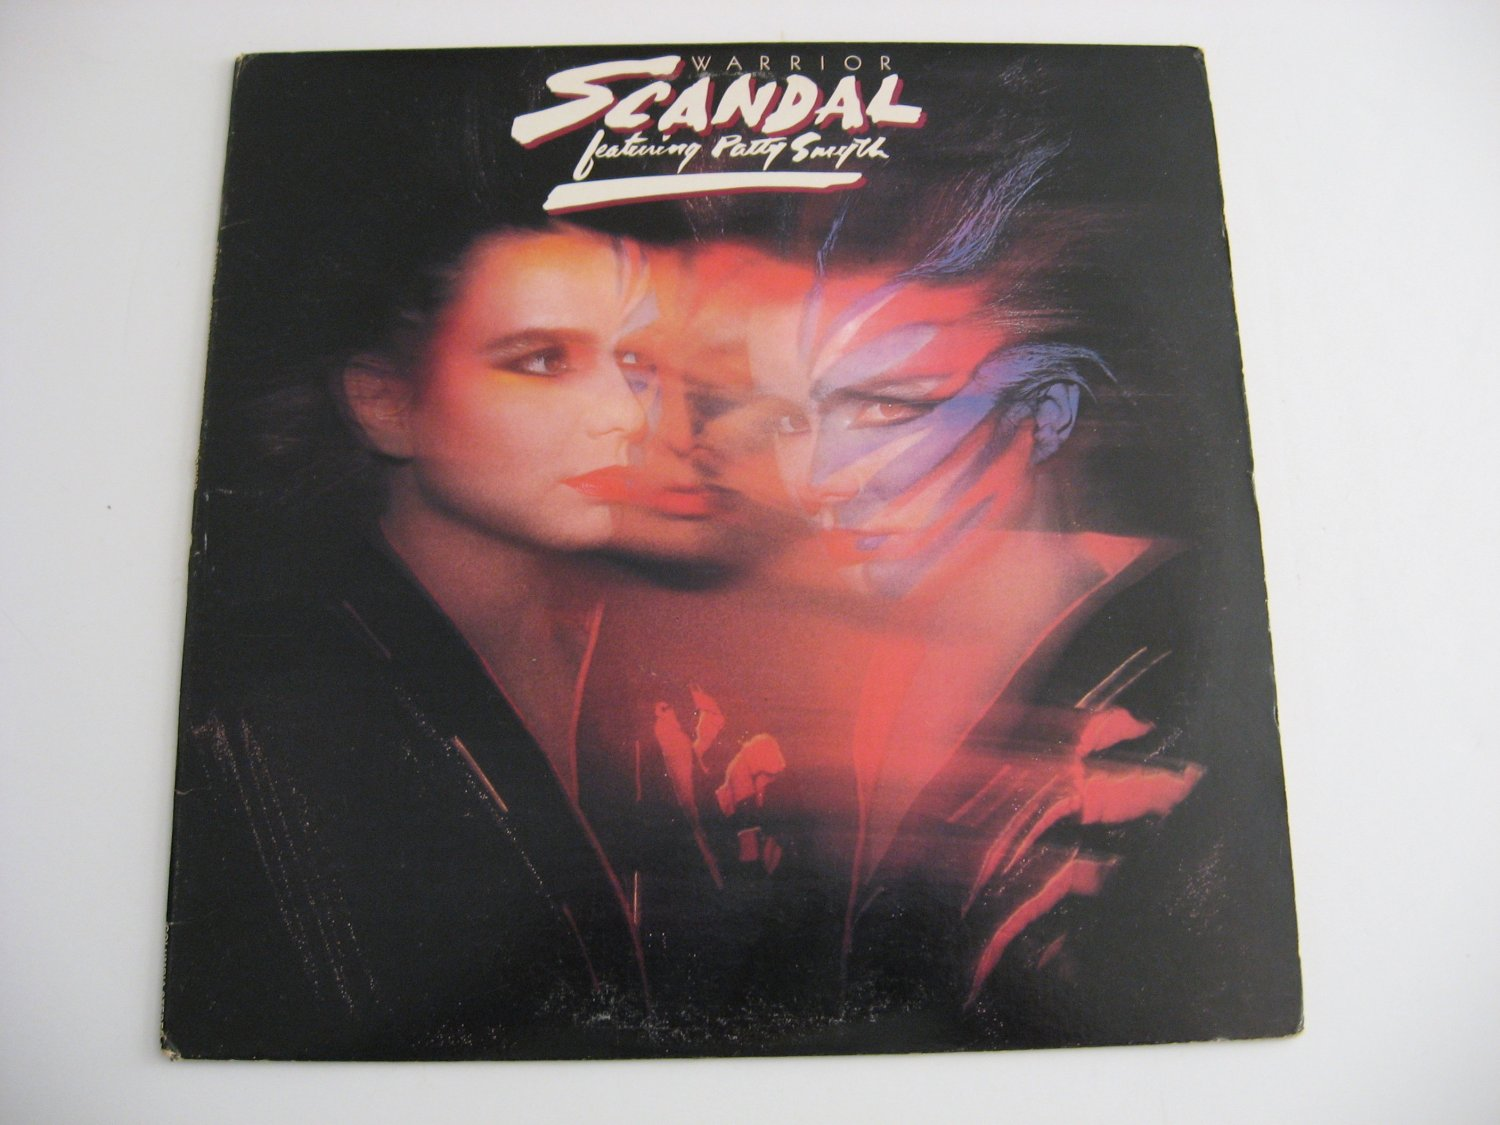 Patty Smyth & Scandal - Warrior - Circa 1984